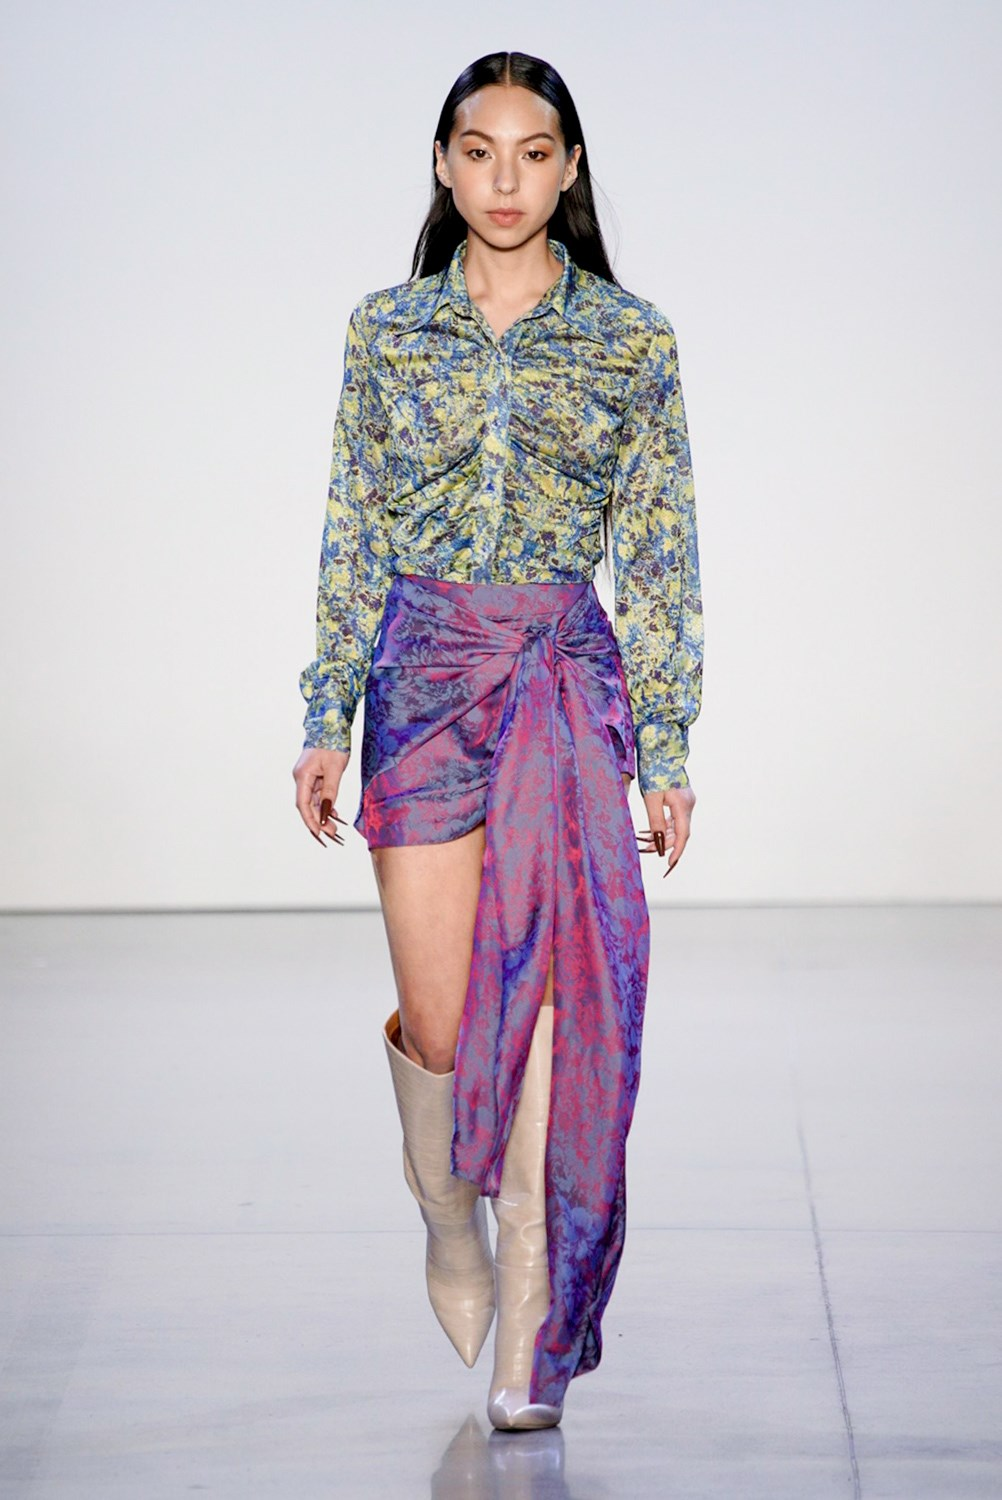 Kim Shui Fall 2020 Fashion Show Photos